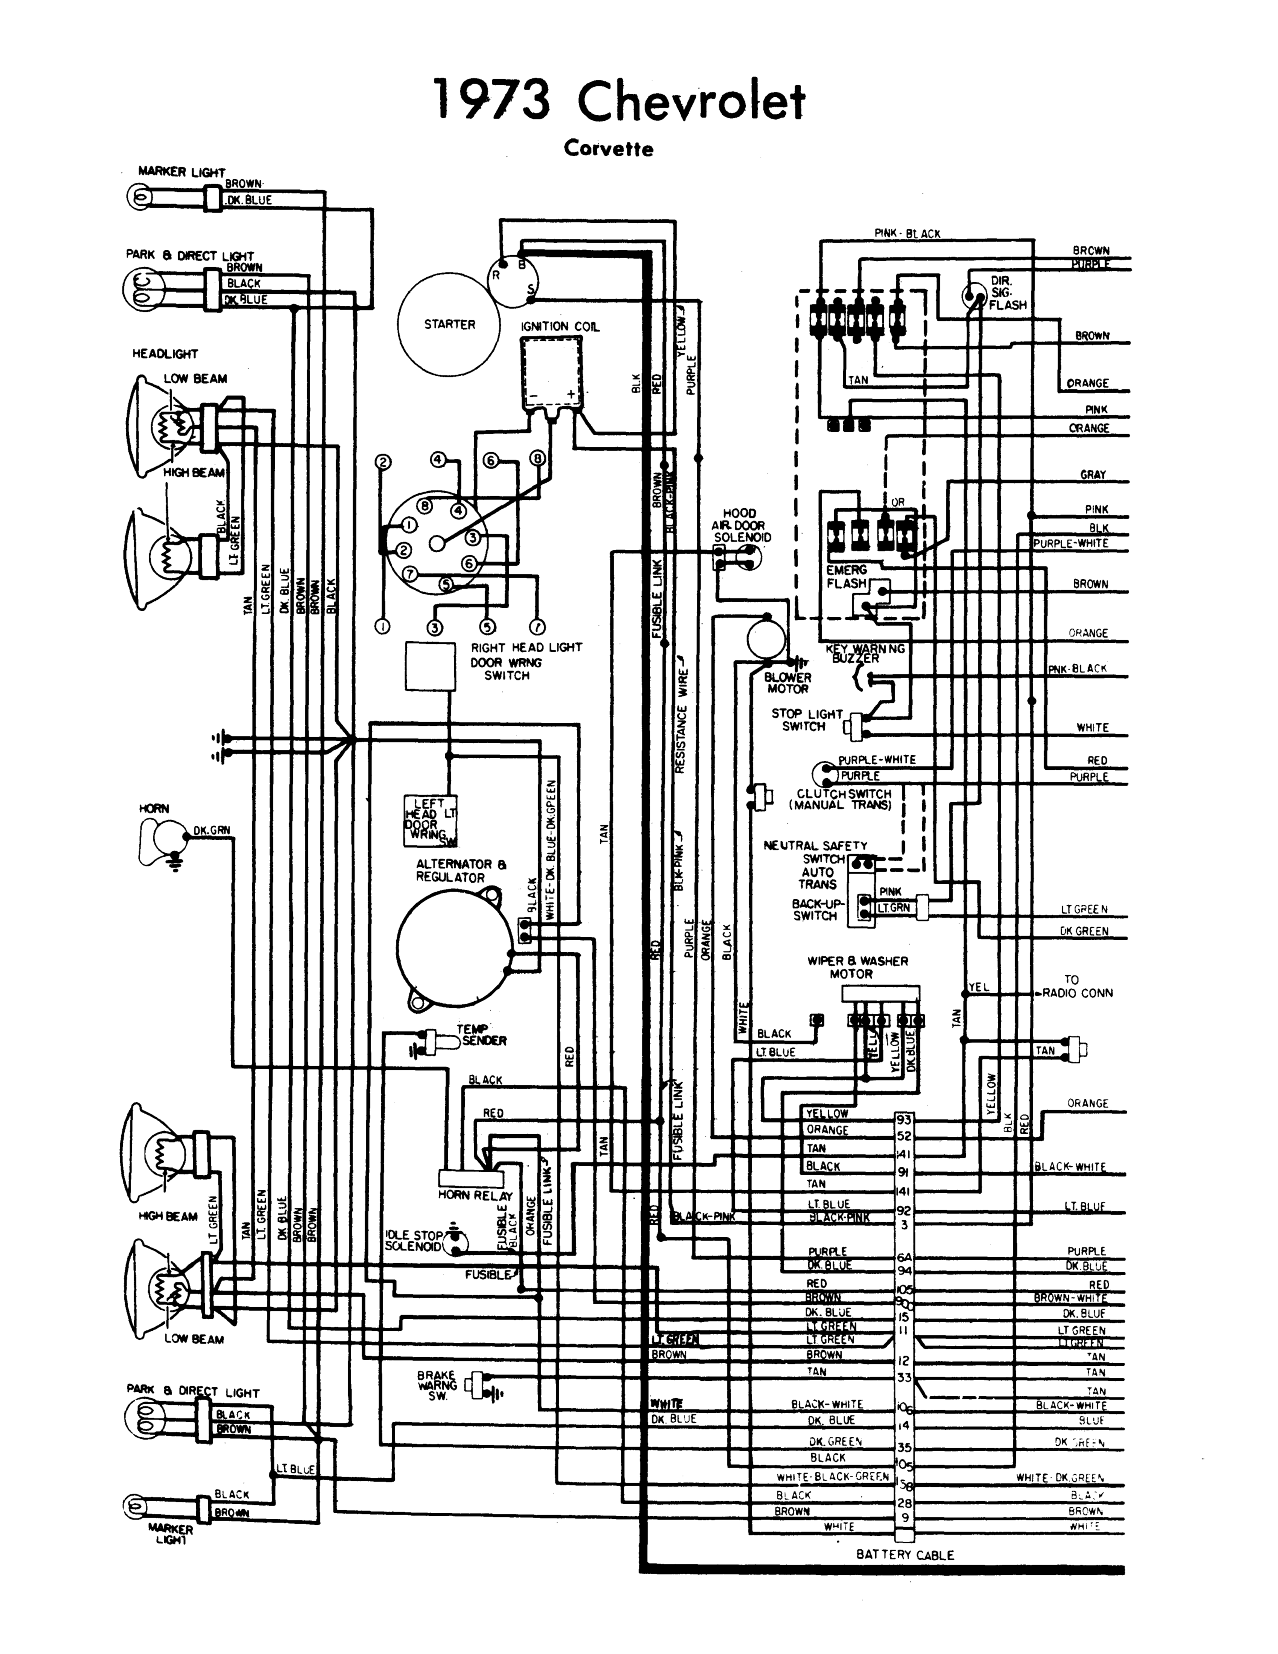 wiring diagram 1973 corvette chevy corvette 1973 wiring diagrams rh pinterest com 1981 corvette wiring diagrams 1976 corvette wiring diagrams